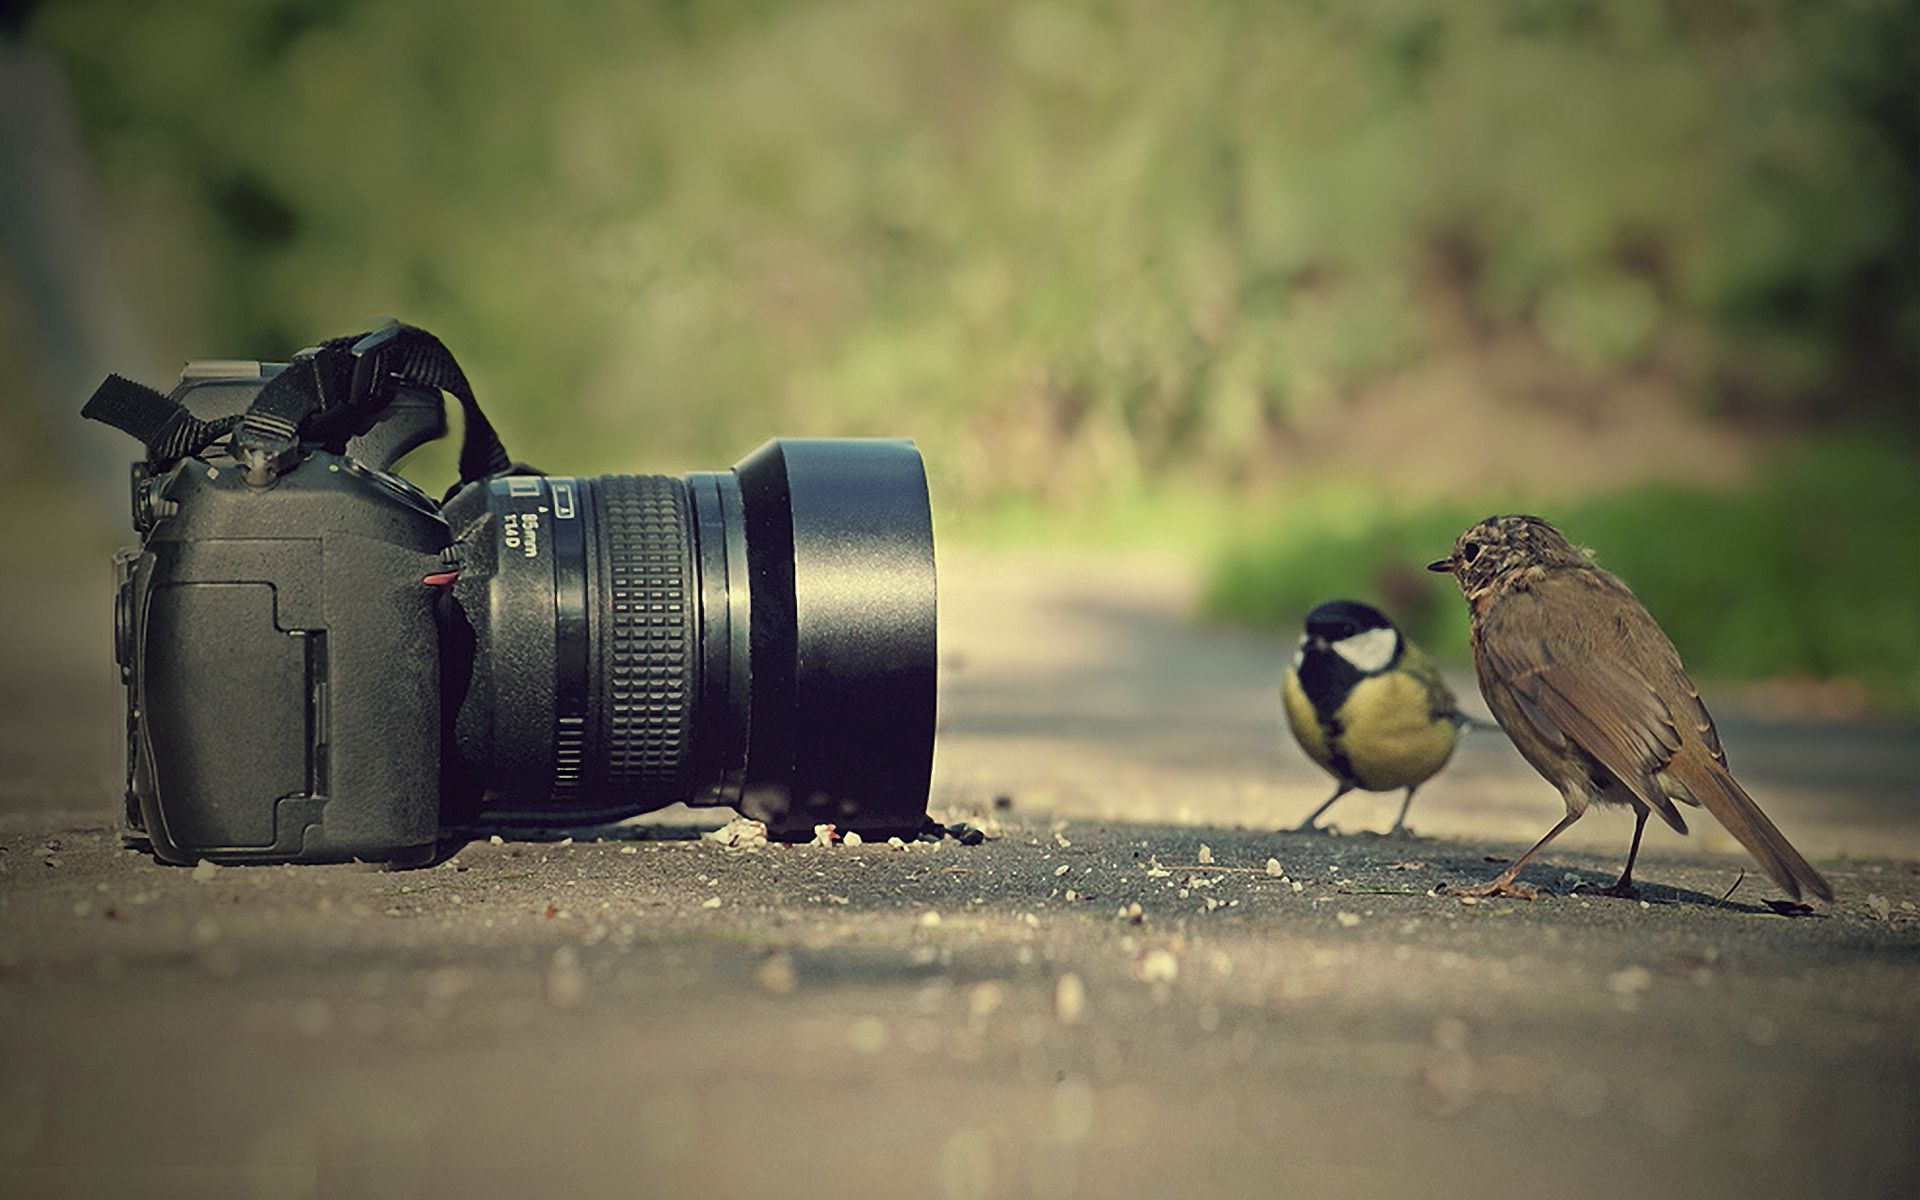 95776 download wallpaper Animals, Birds, Sparrow, Camera, Tit, Titica, Pose screensavers and pictures for free